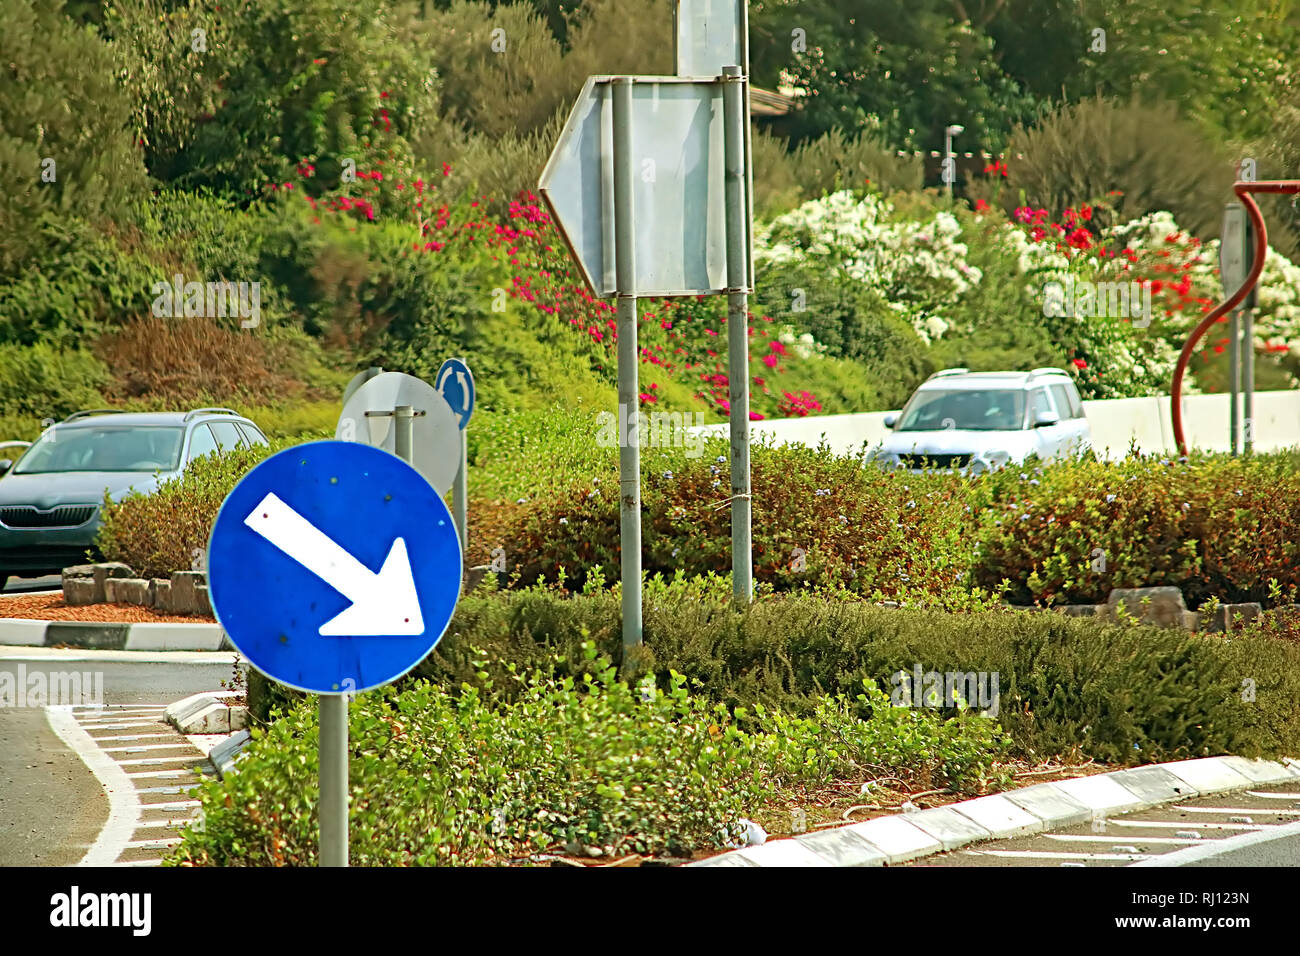 Road sign arrow on the road in Israel - Stock Image